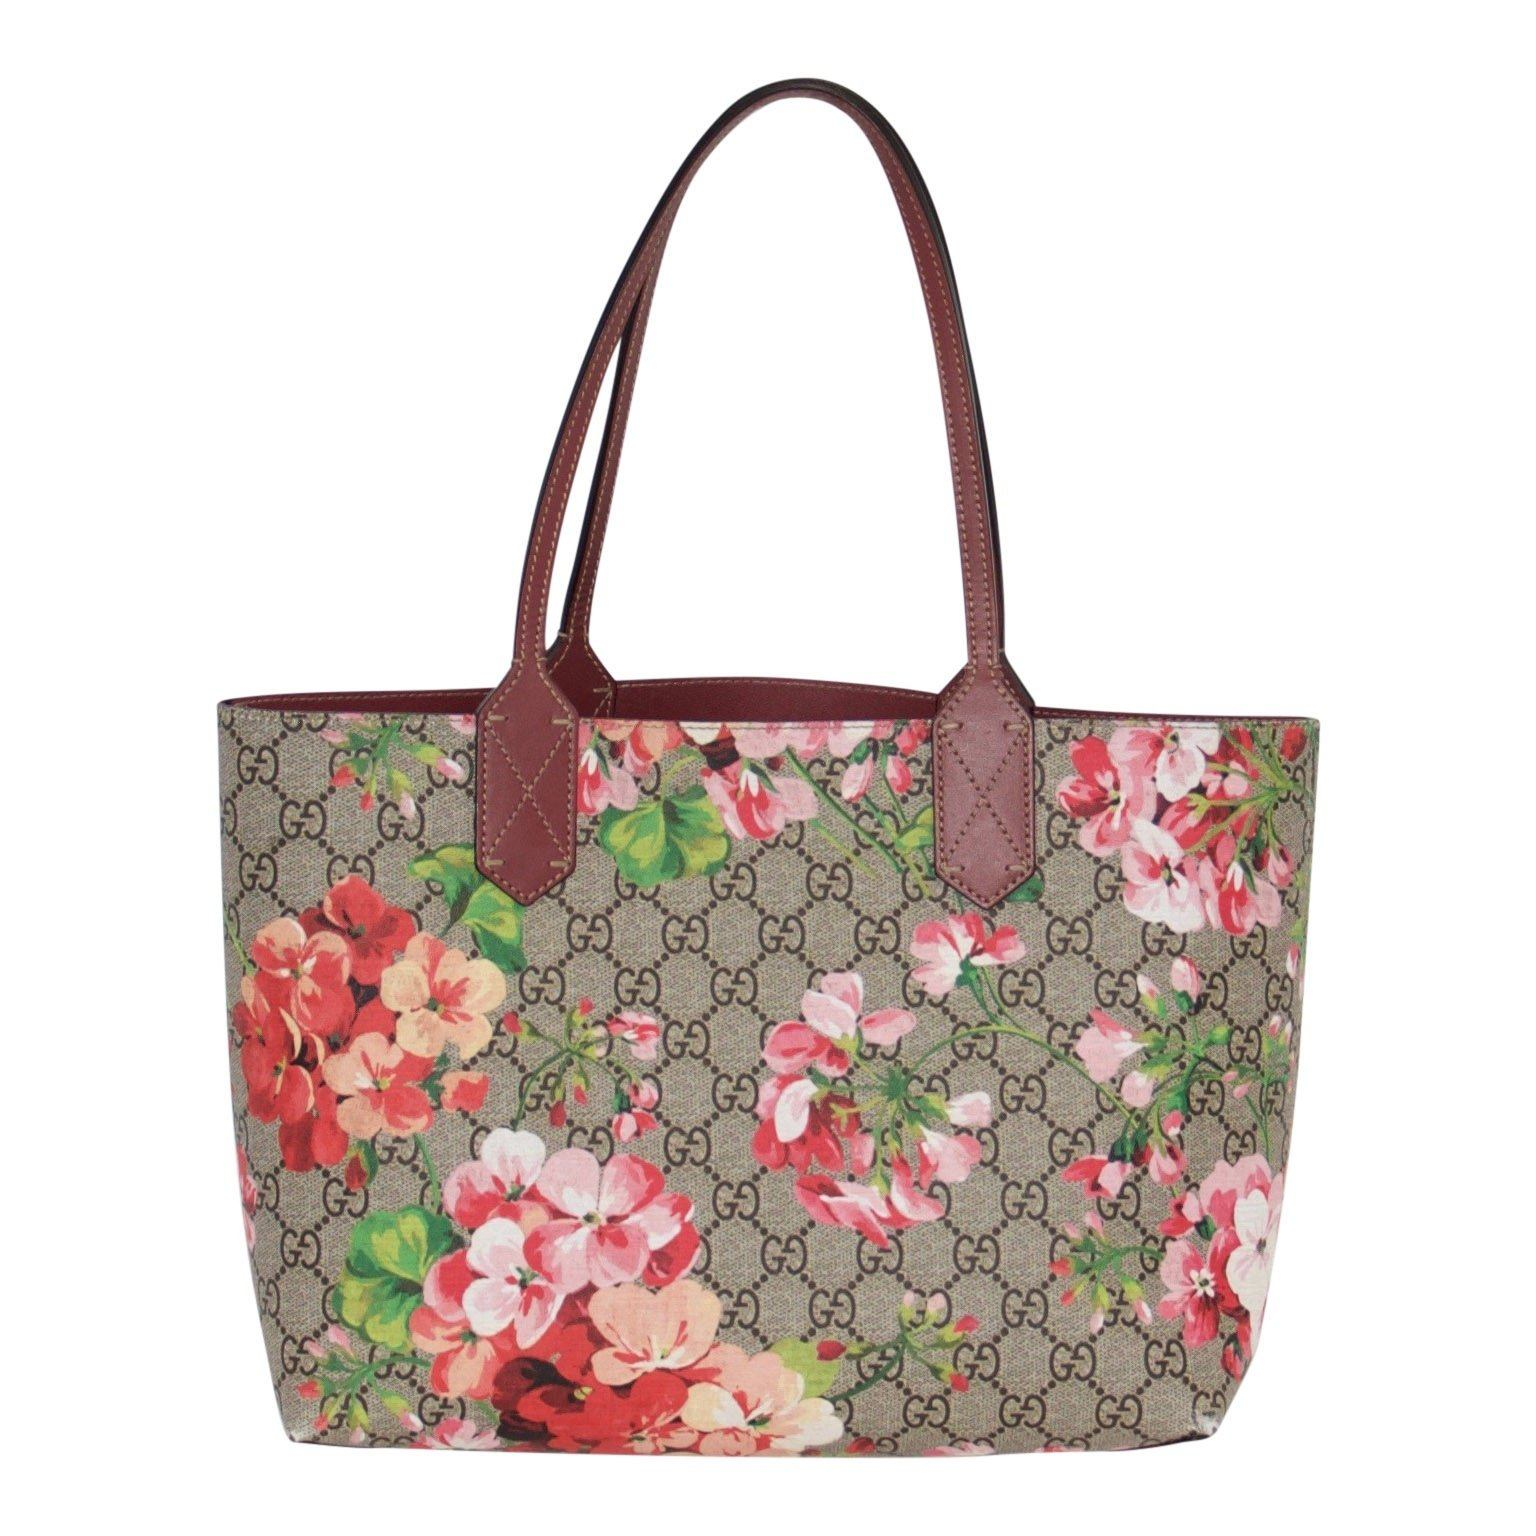 4edee45d544 Gucci Reversible GG Supreme Blooms Tote - Oliver Jewellery